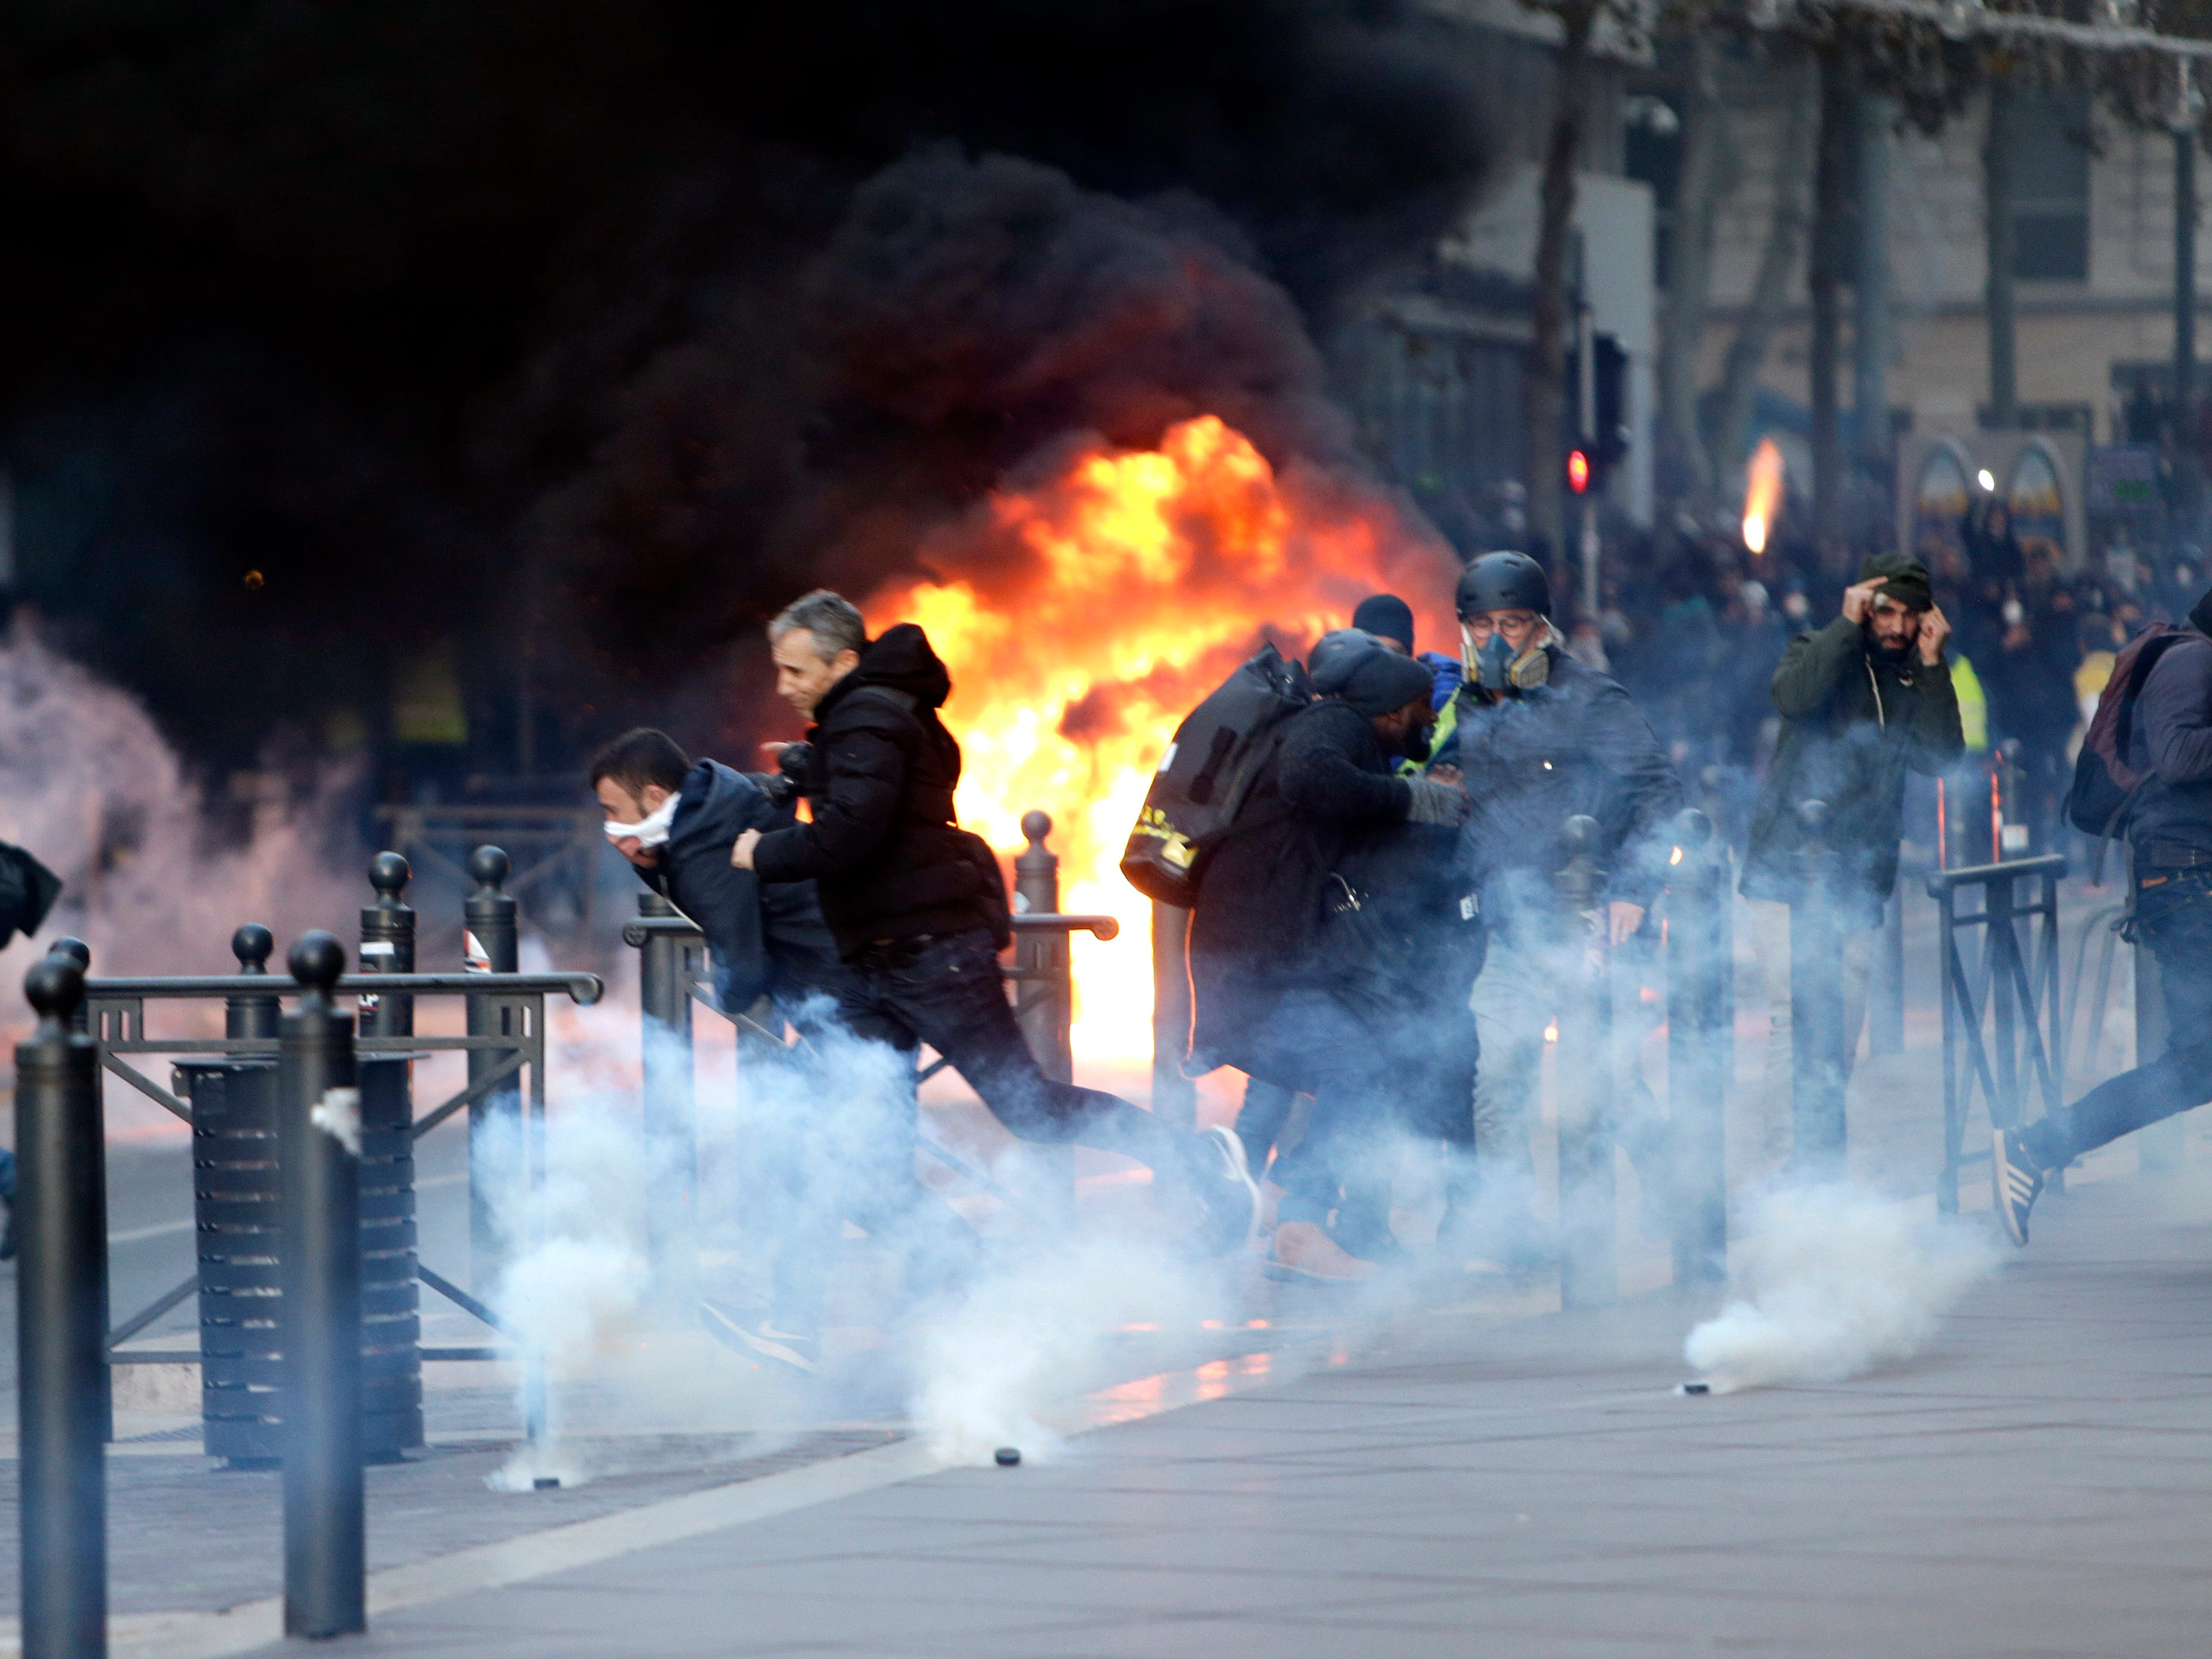 People run away from a burning car during clashes, Saturday, Dec. 8, 2018, in Marseille, southern France. The grassroots movement began as resistance against a rise in taxes for diesel and gasoline, but quickly expanded to encompass frustration at stagnant incomes and the growing cost of living.